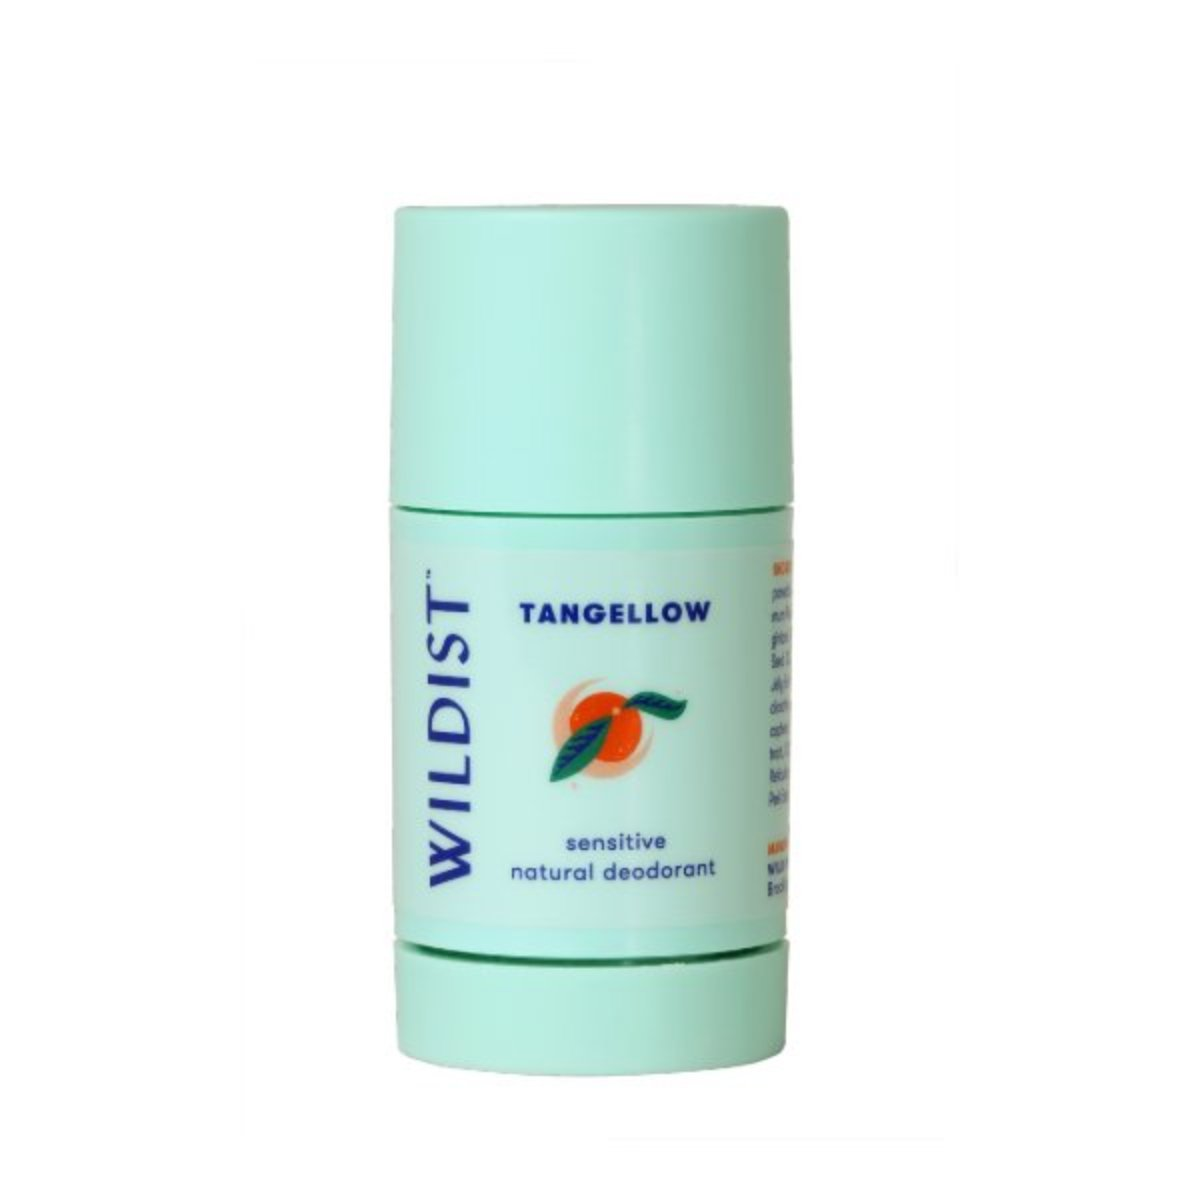 Sensitive Natural Deodorant - Tangellow